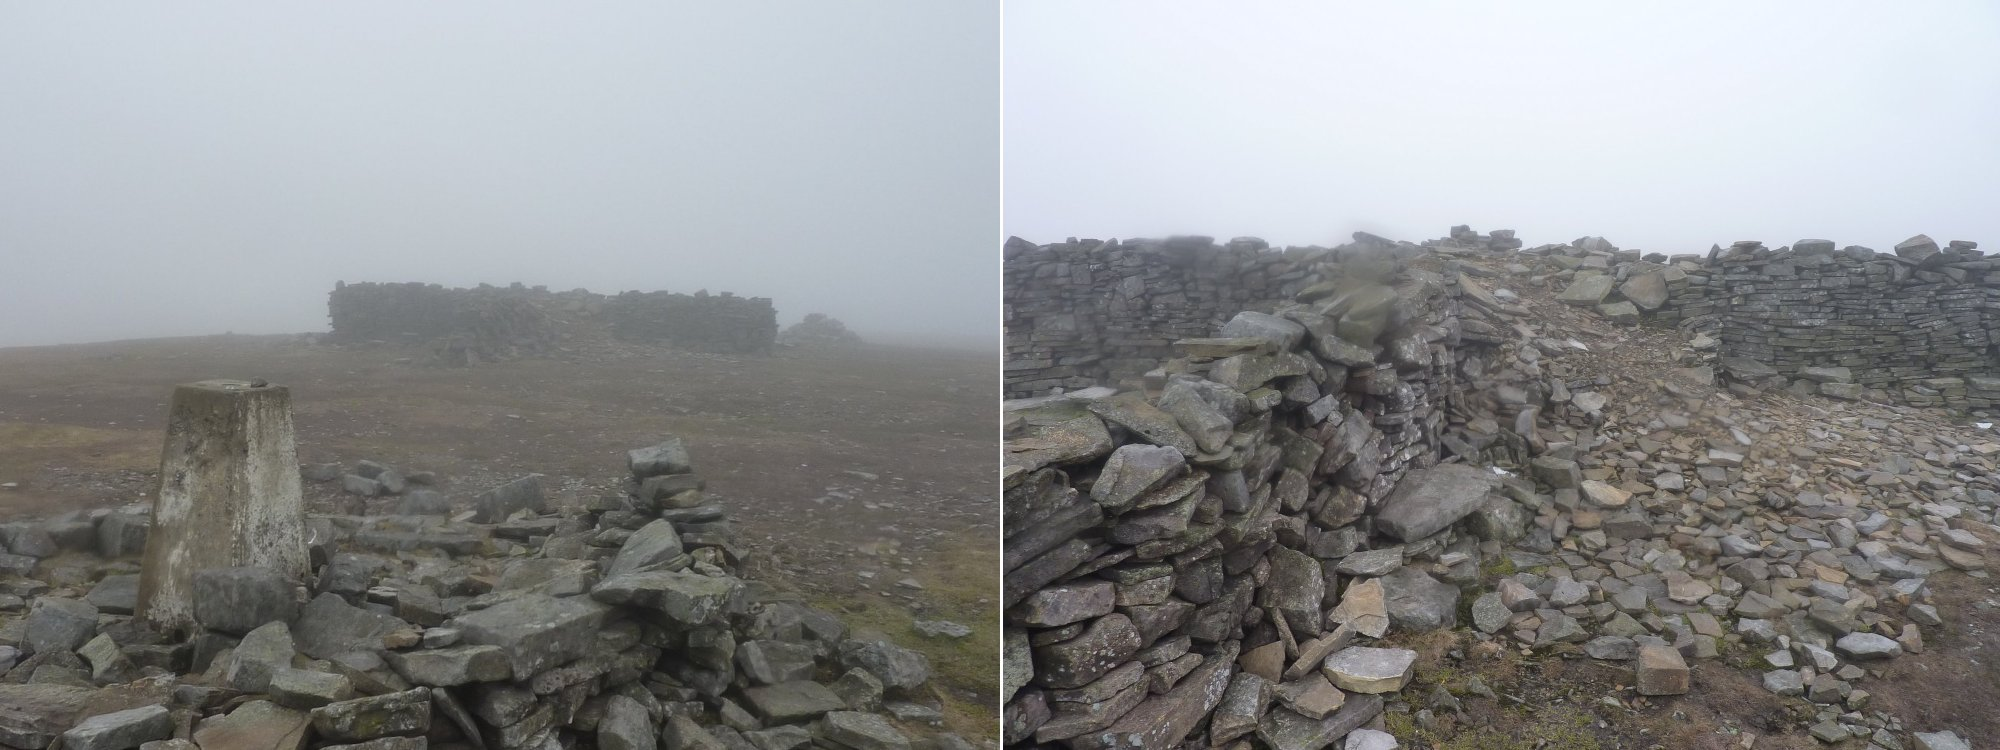 Left: Trig point and shelter on Cross Fell      Right: Mostly collapsed shelter on Cross Fell